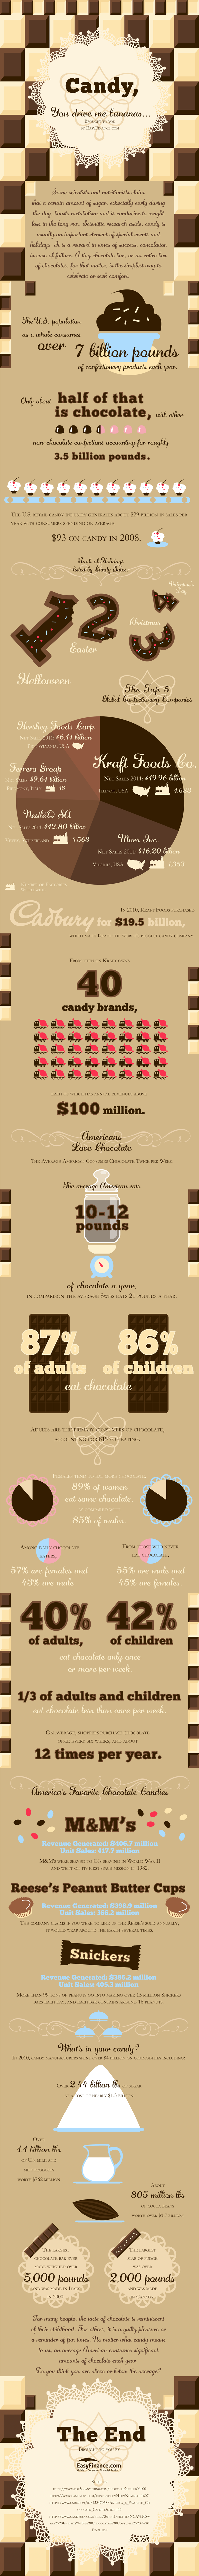 Candy, You Drive Me Bananas (Infographic)